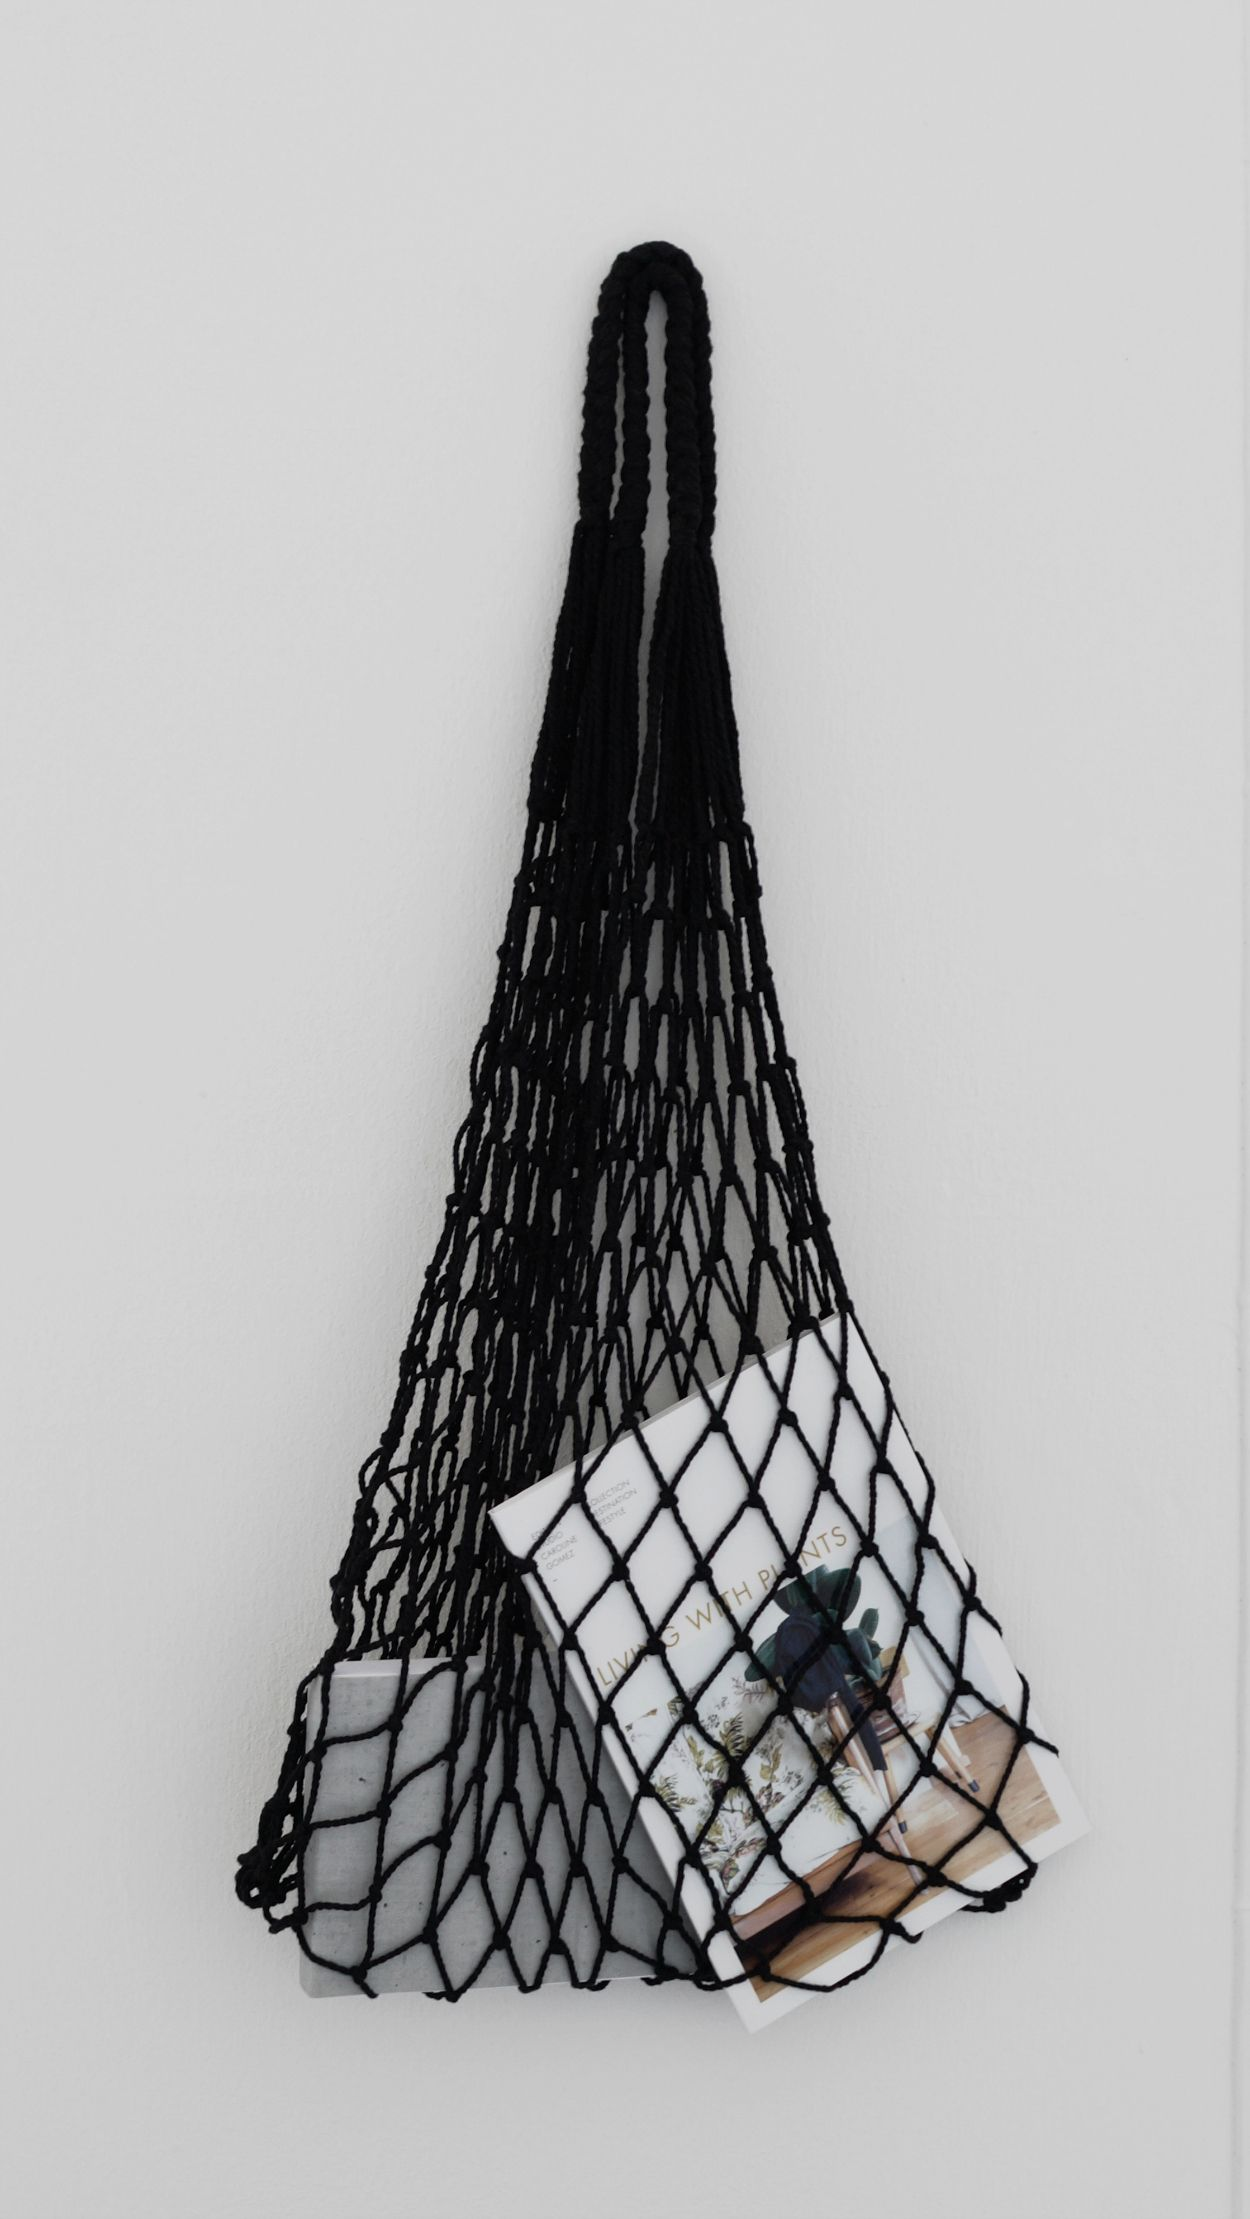 Minimal Eco Mesh Bag Perfect For Little Trips And Ping